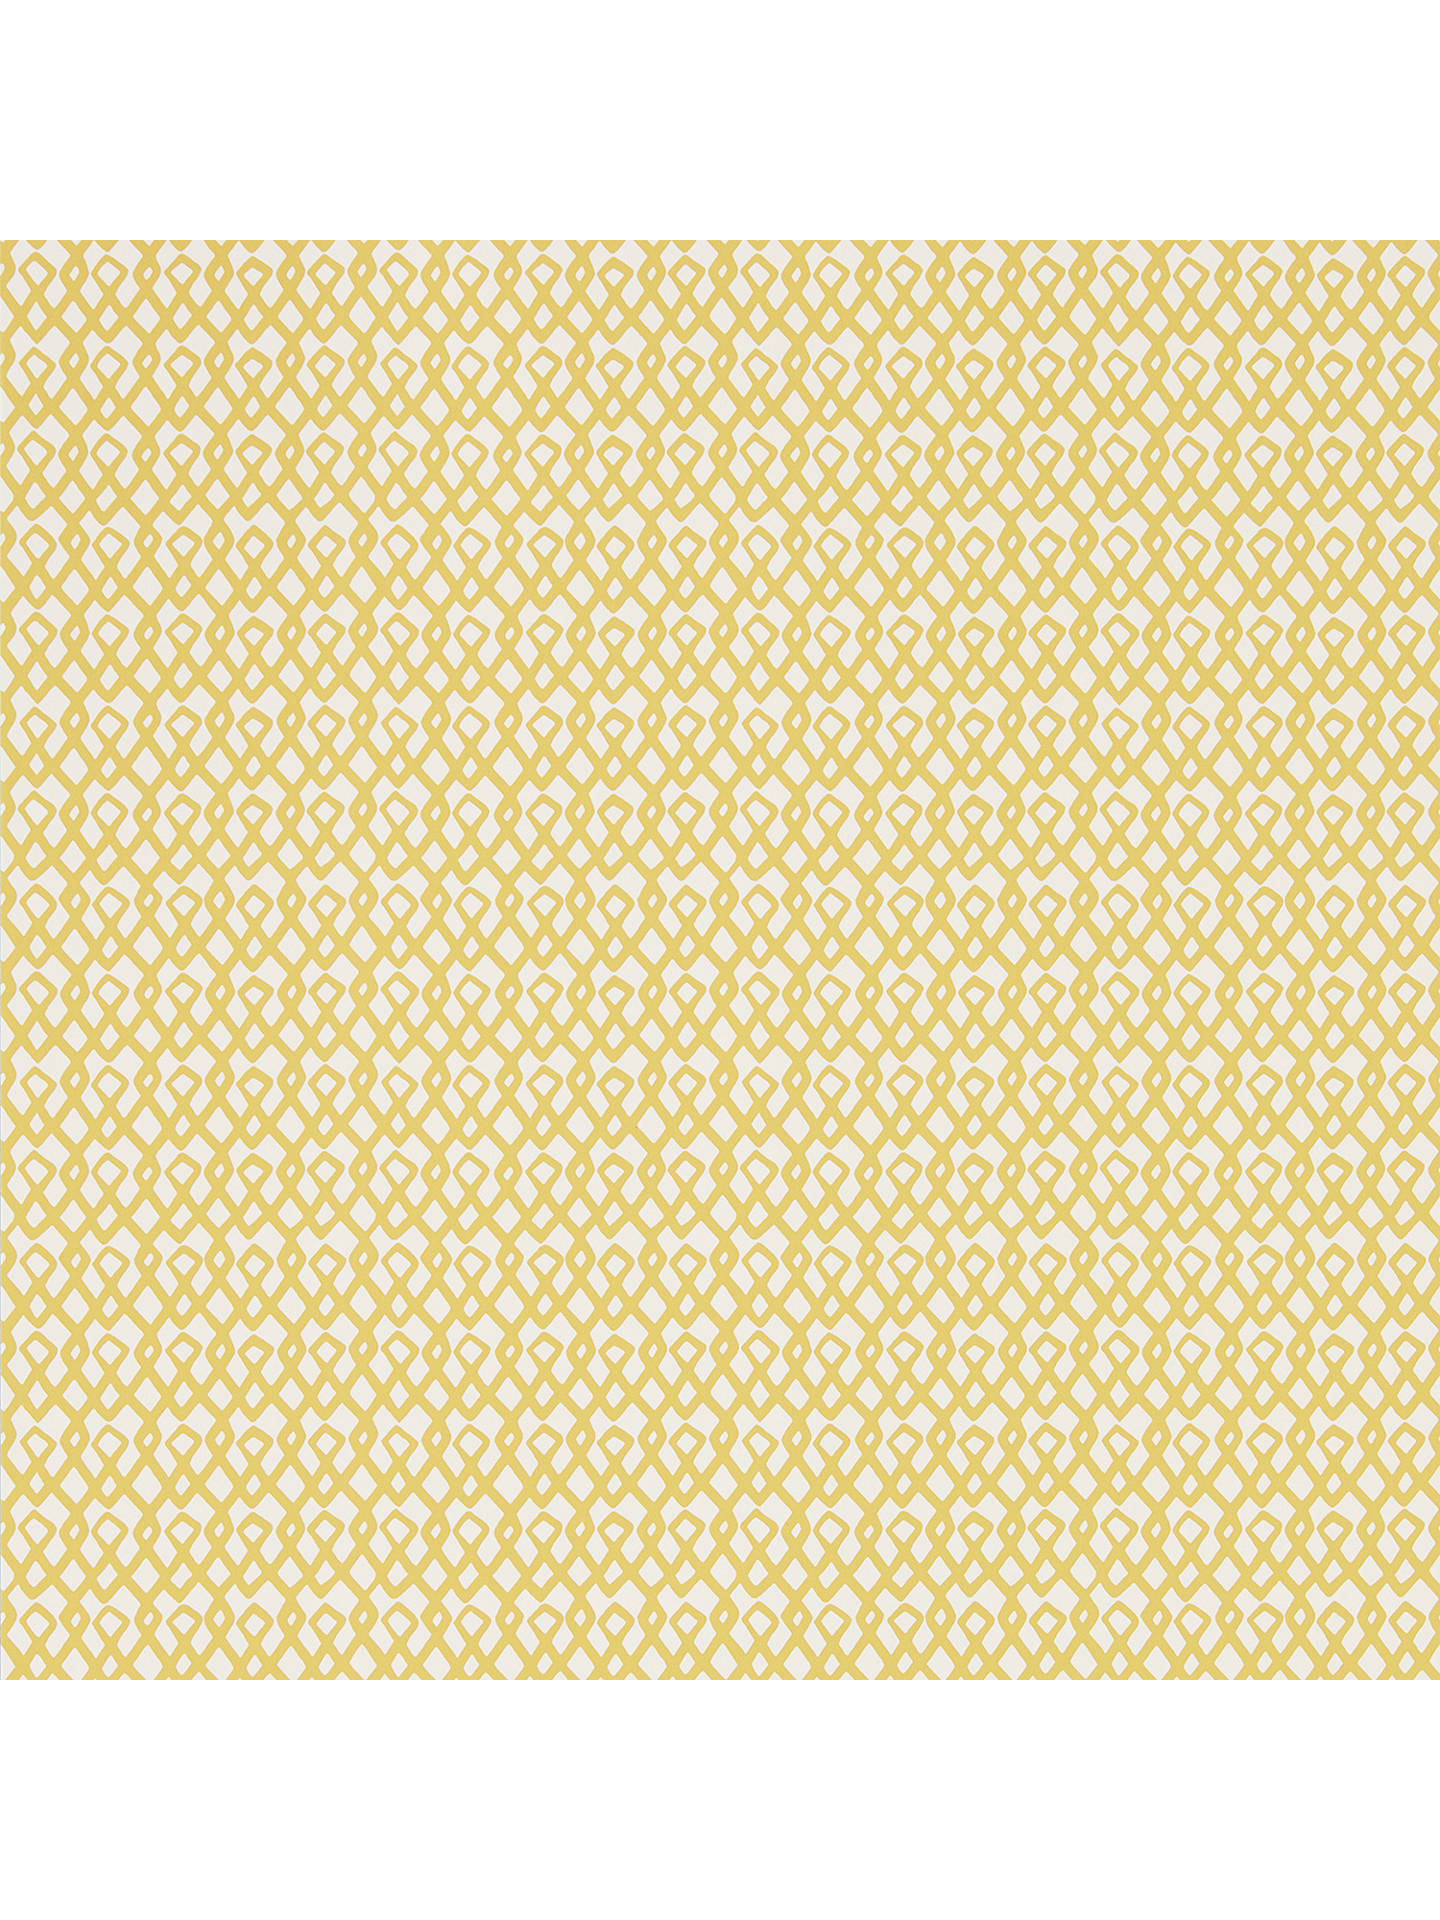 Buy Scion Ristikko Wallpaper, Honey 111539 Online at johnlewis.com